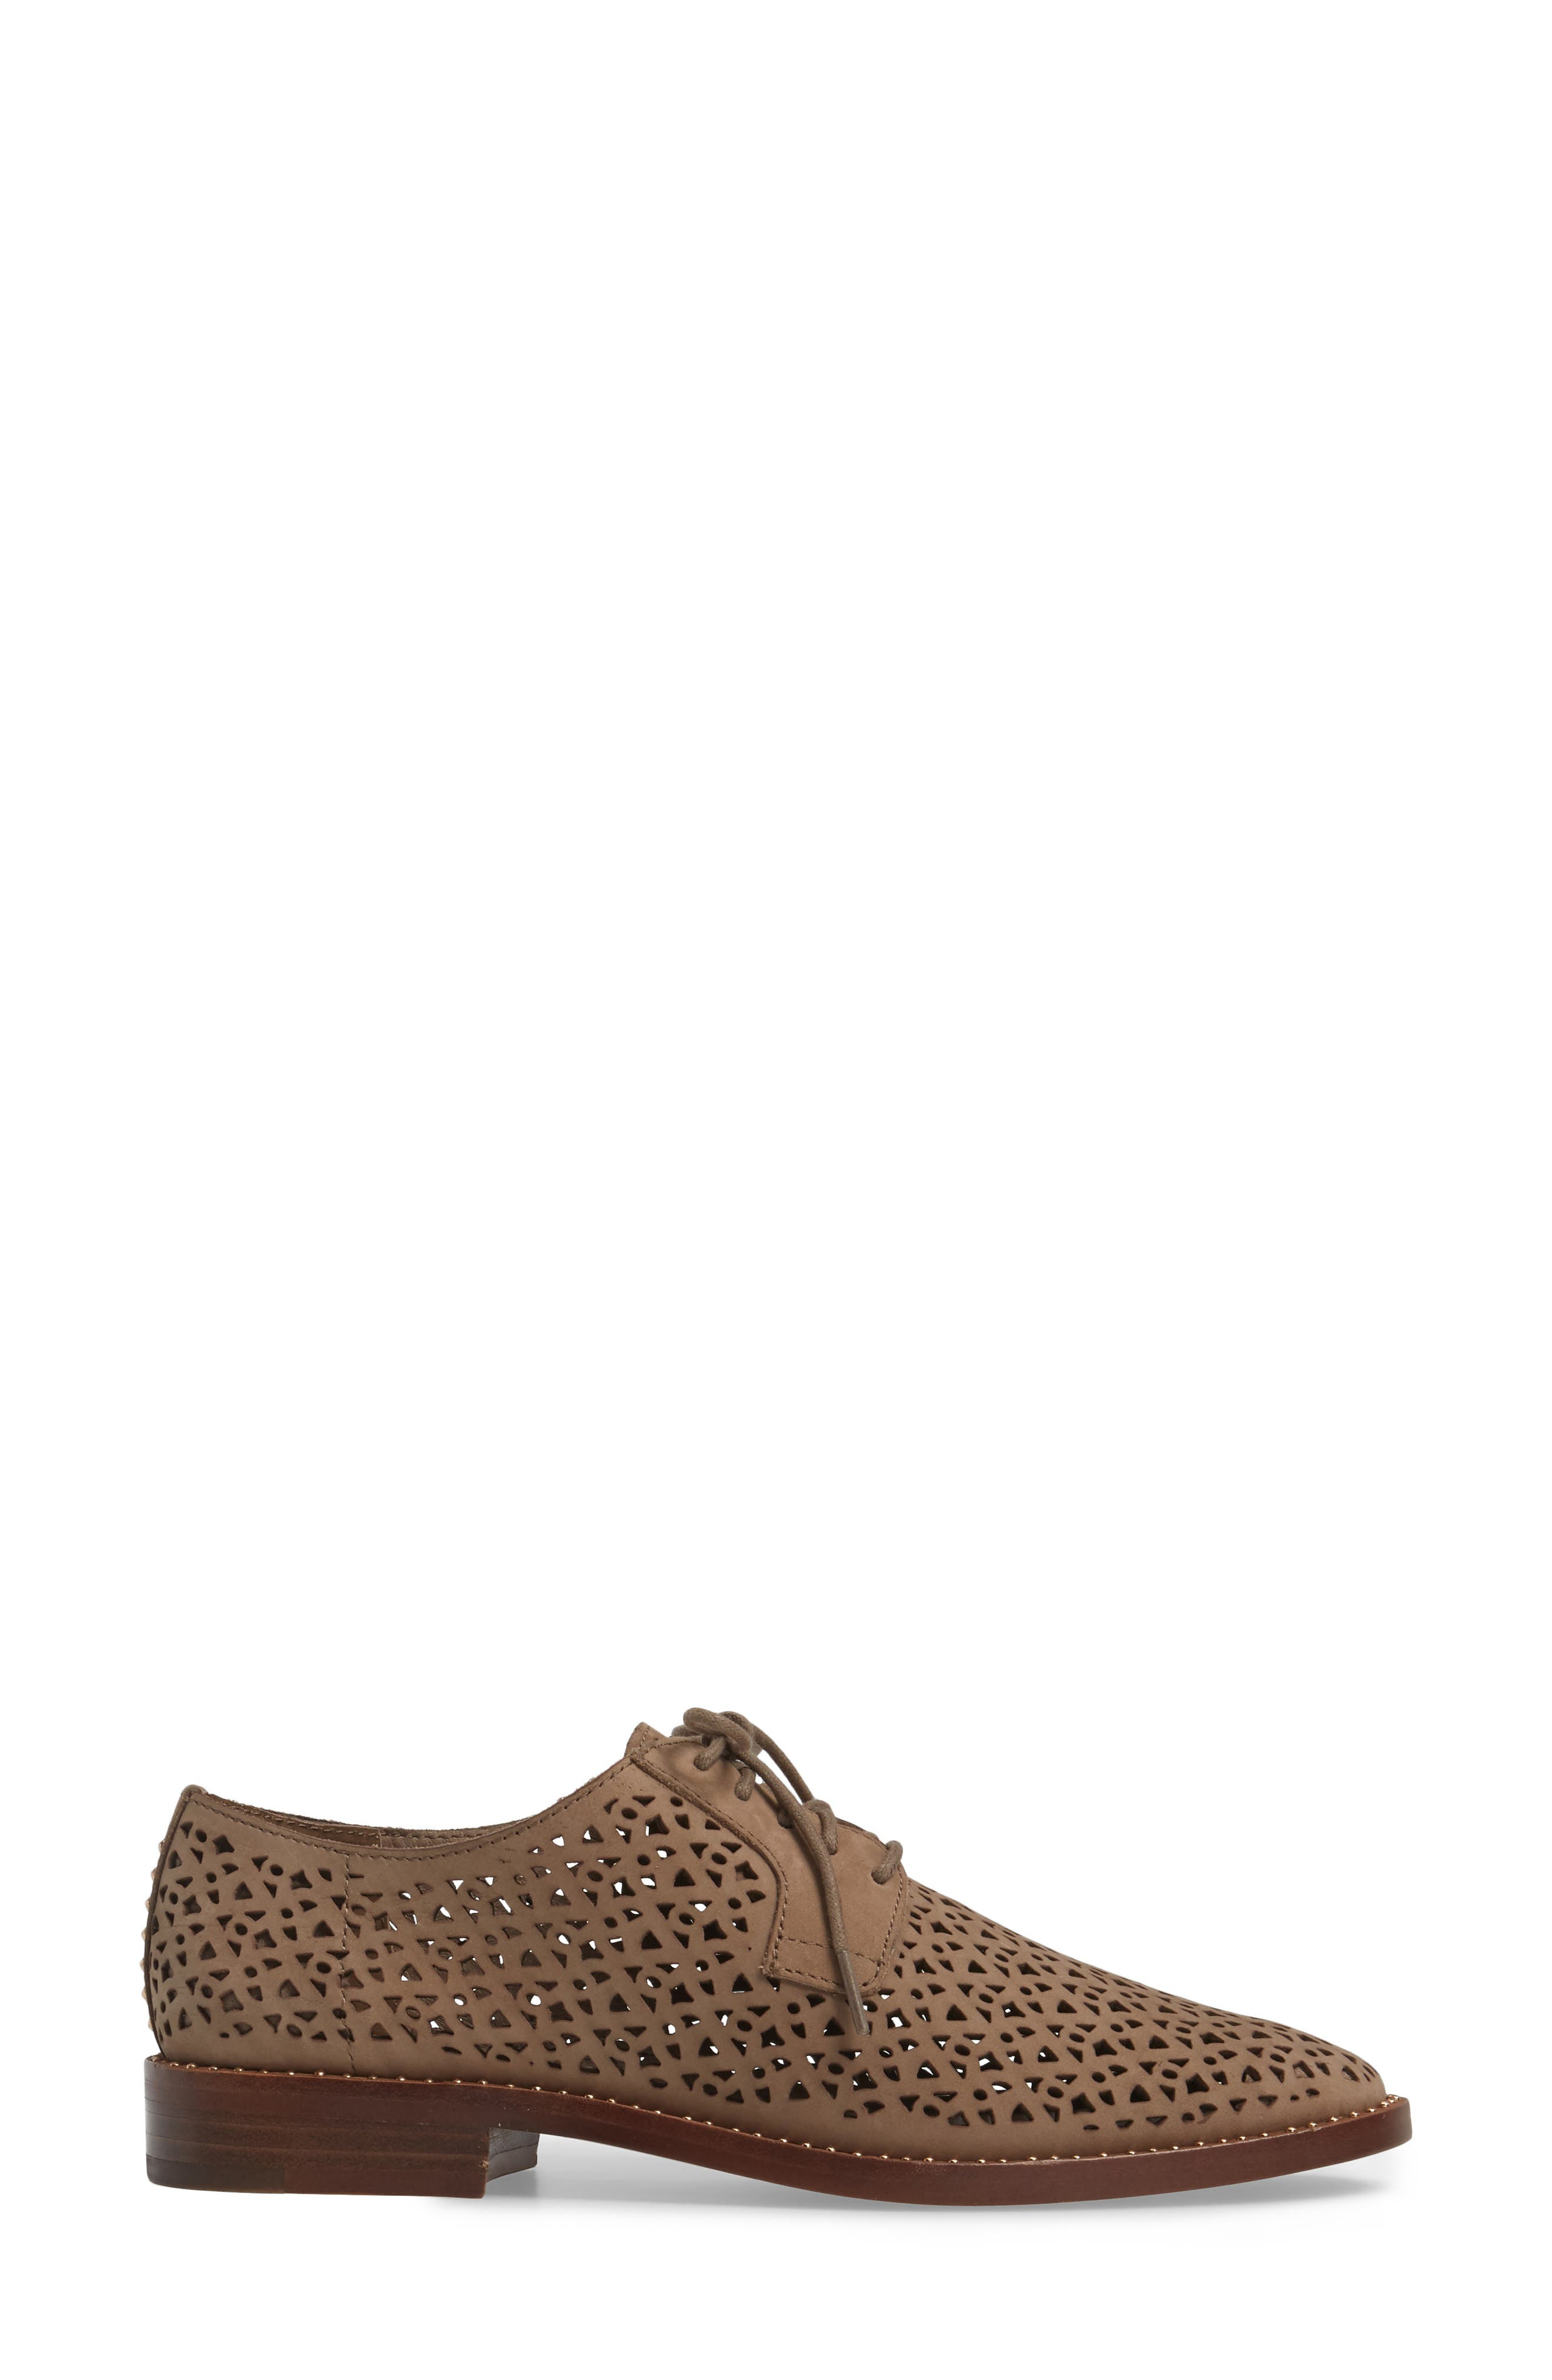 Lesta Geo Perforated Oxford,                             Alternate thumbnail 3, color,                             French Taupe Suede